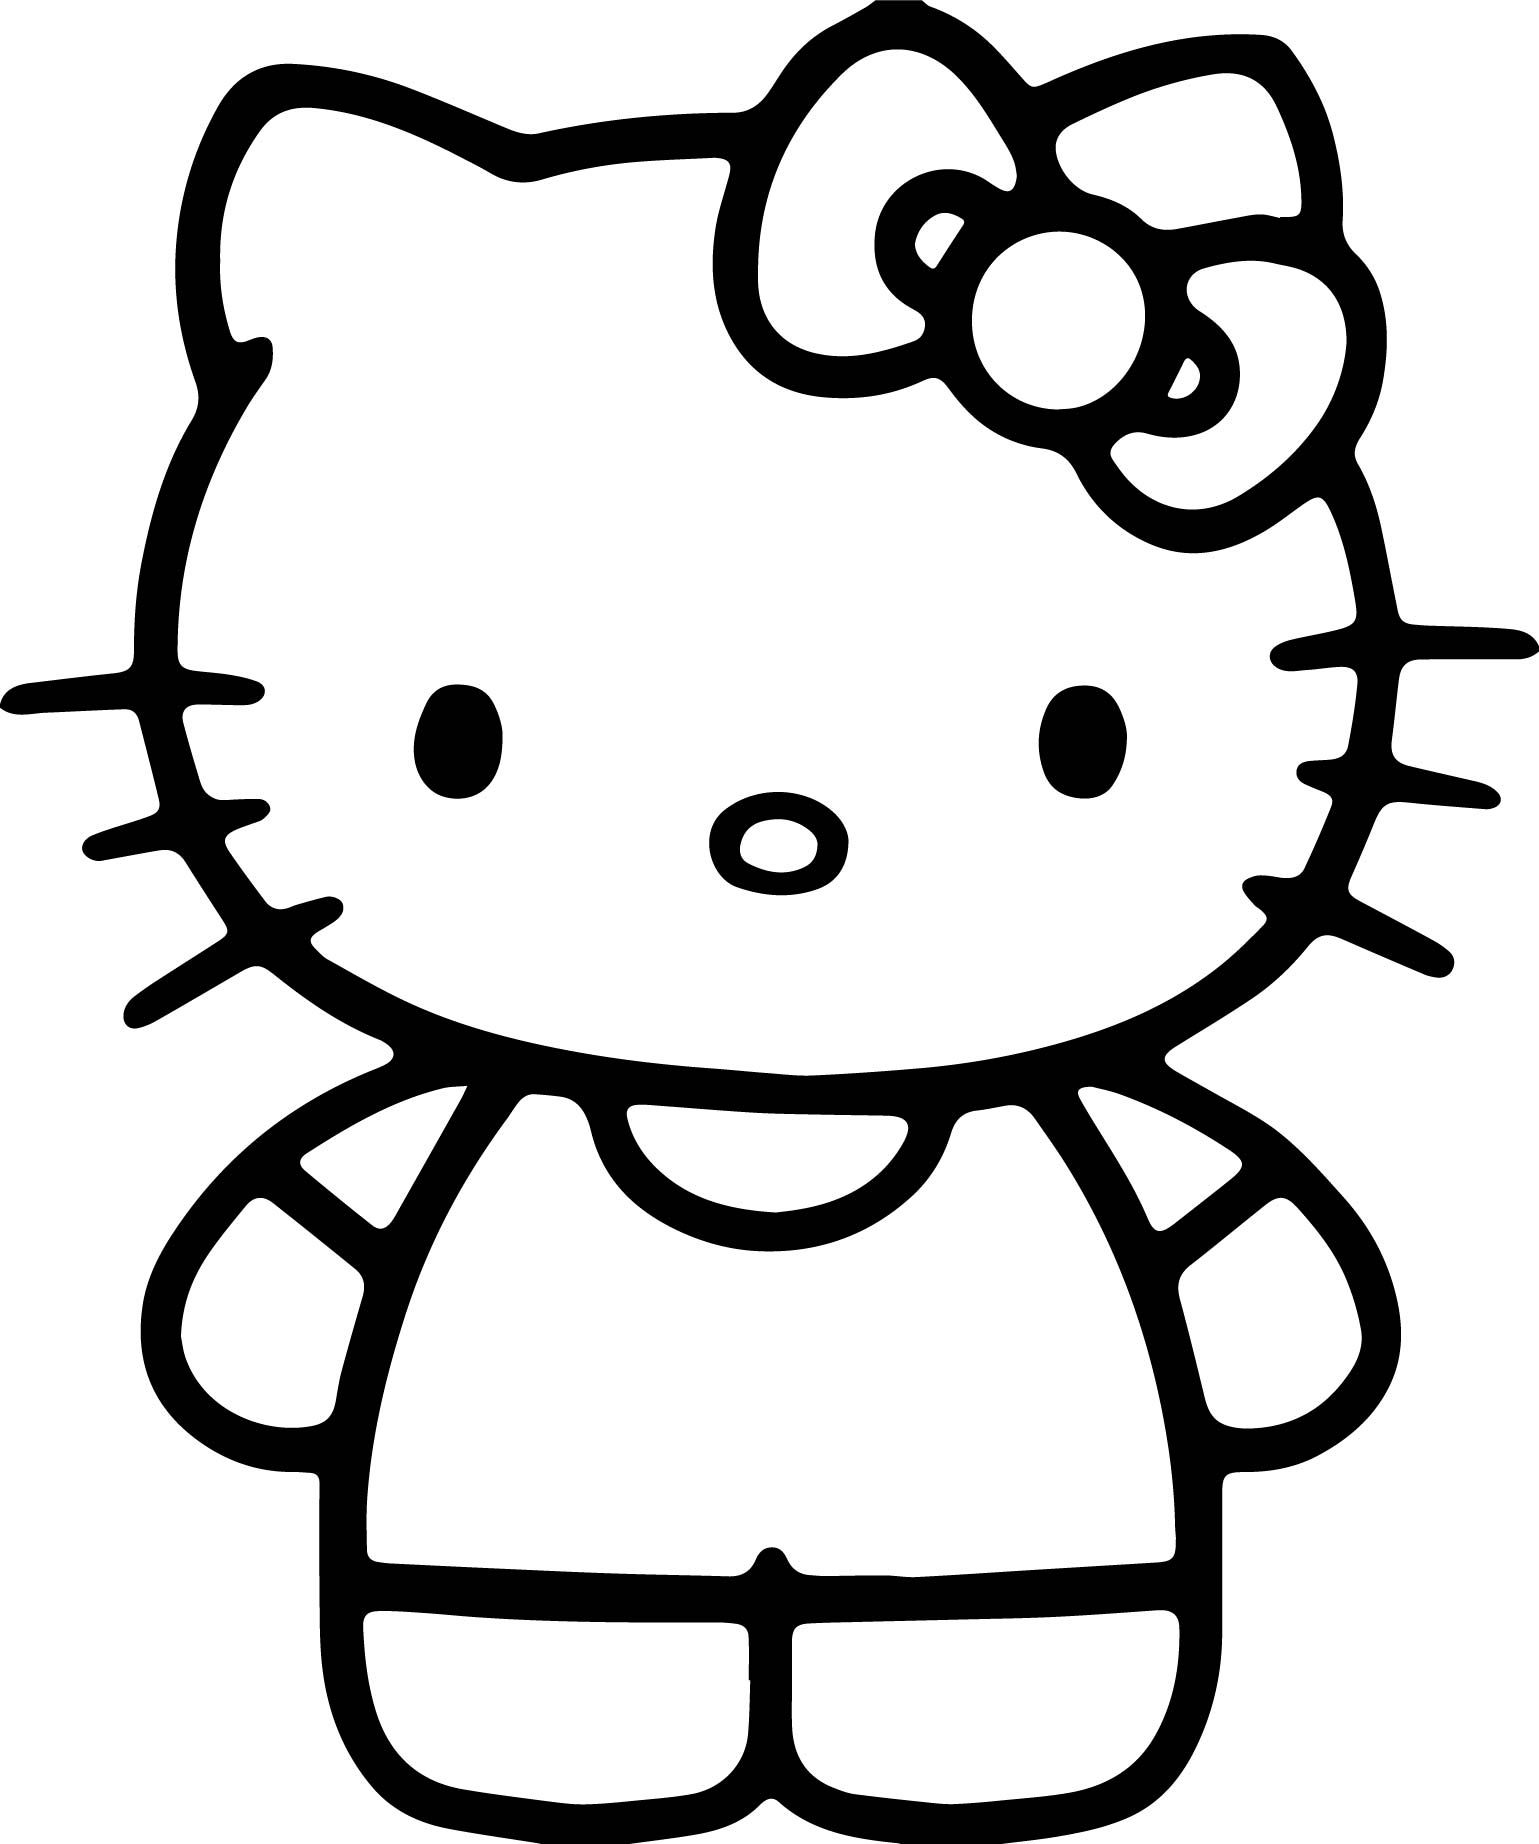 free coloring pages for 4 year olds worksheets for 4 year olds counting coloring pages printable olds pages 4 year coloring for free